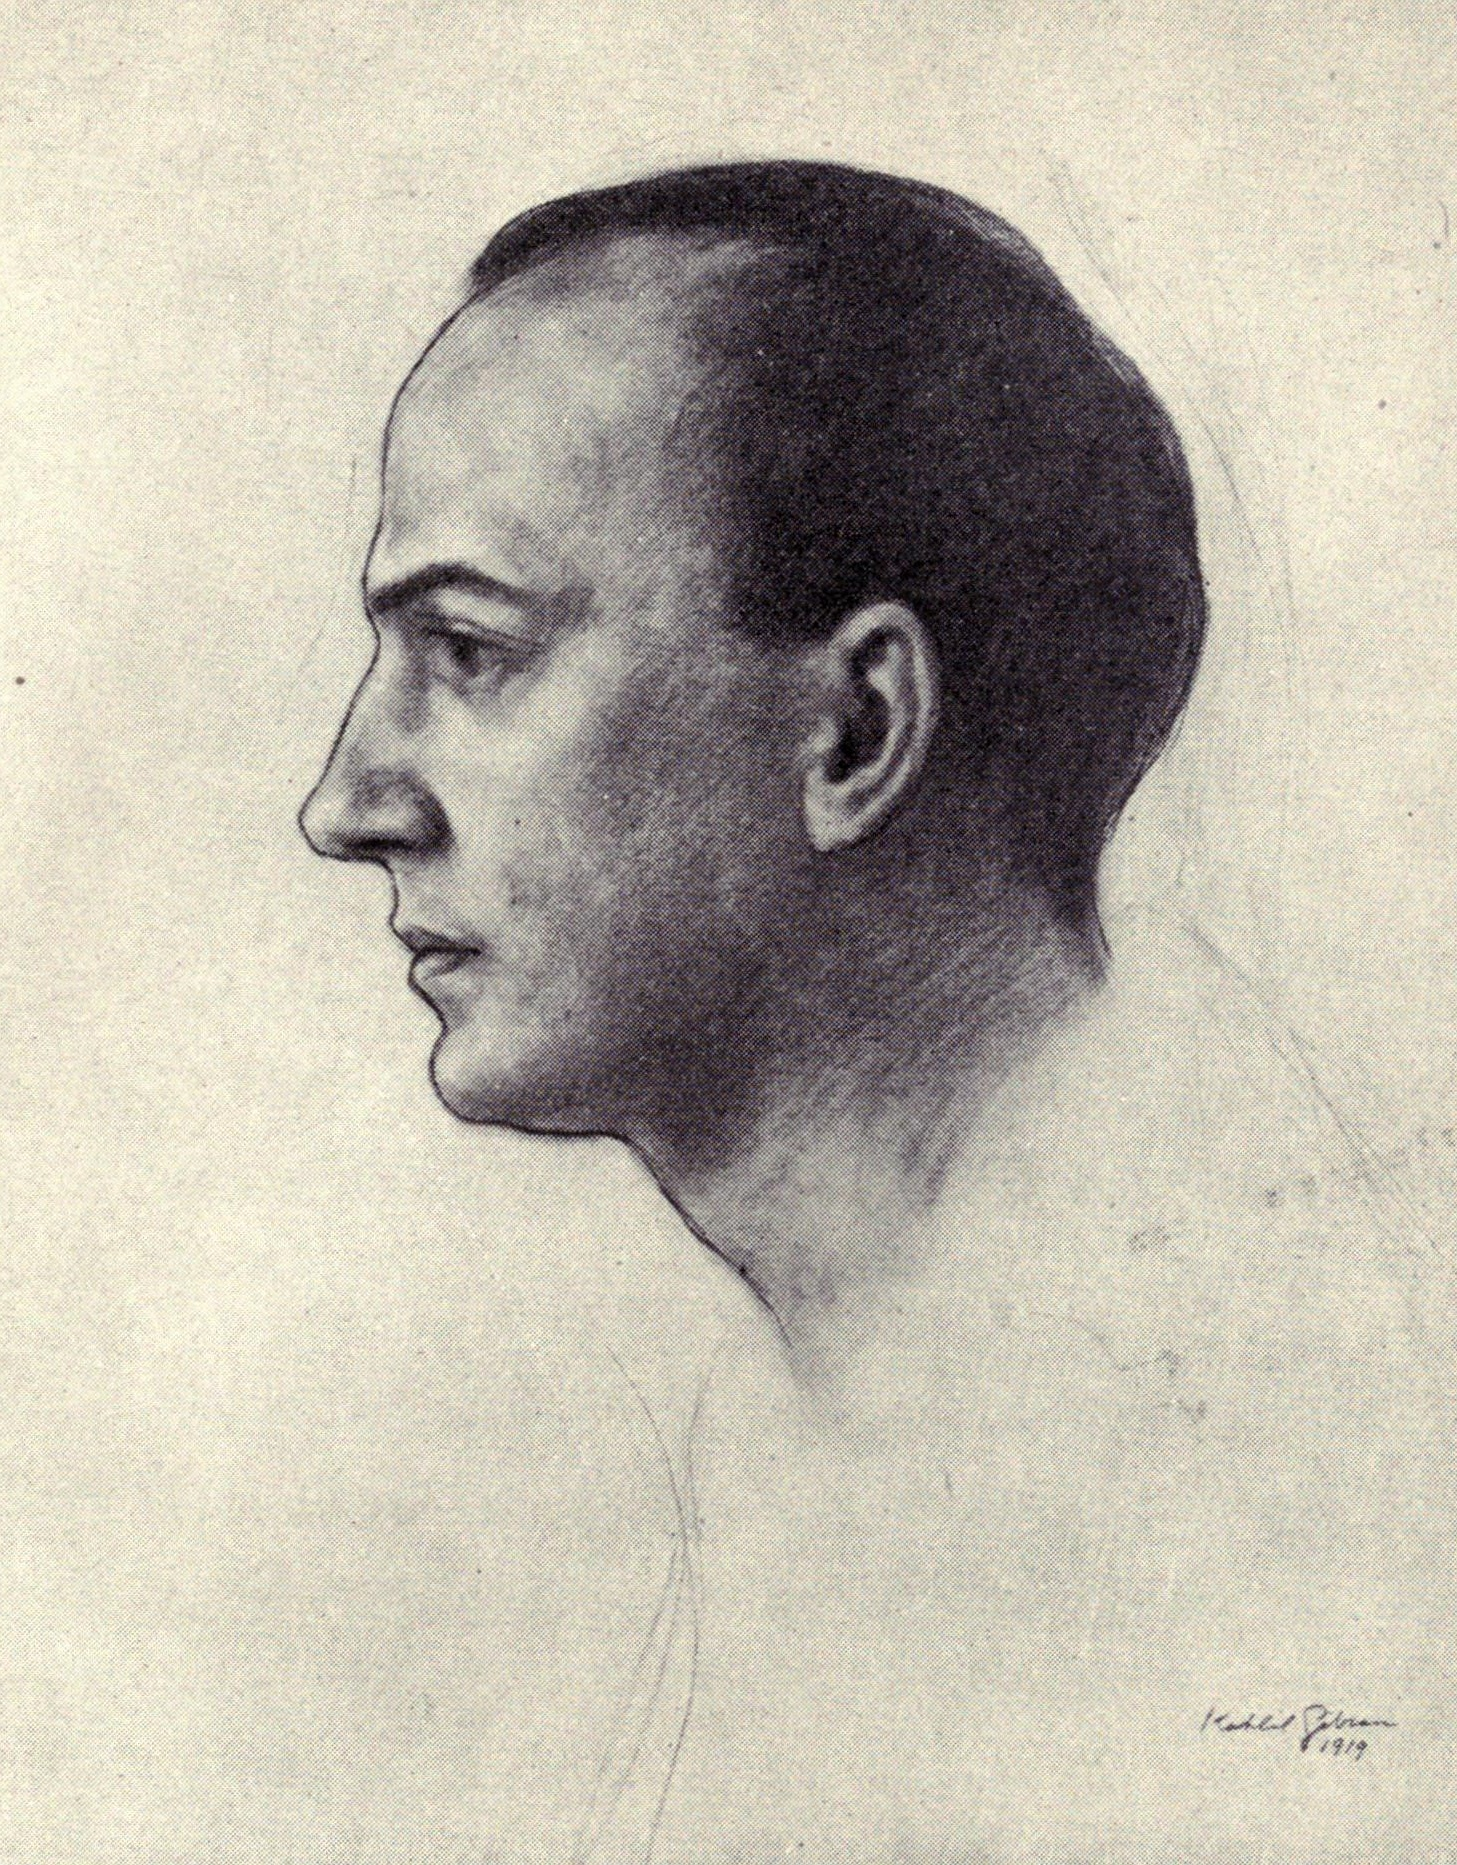 Witter Bynner, The New World, New York: Knopf, 1922 [Frontispiece portrait of the Author by Kahlil Gibran, 1919].